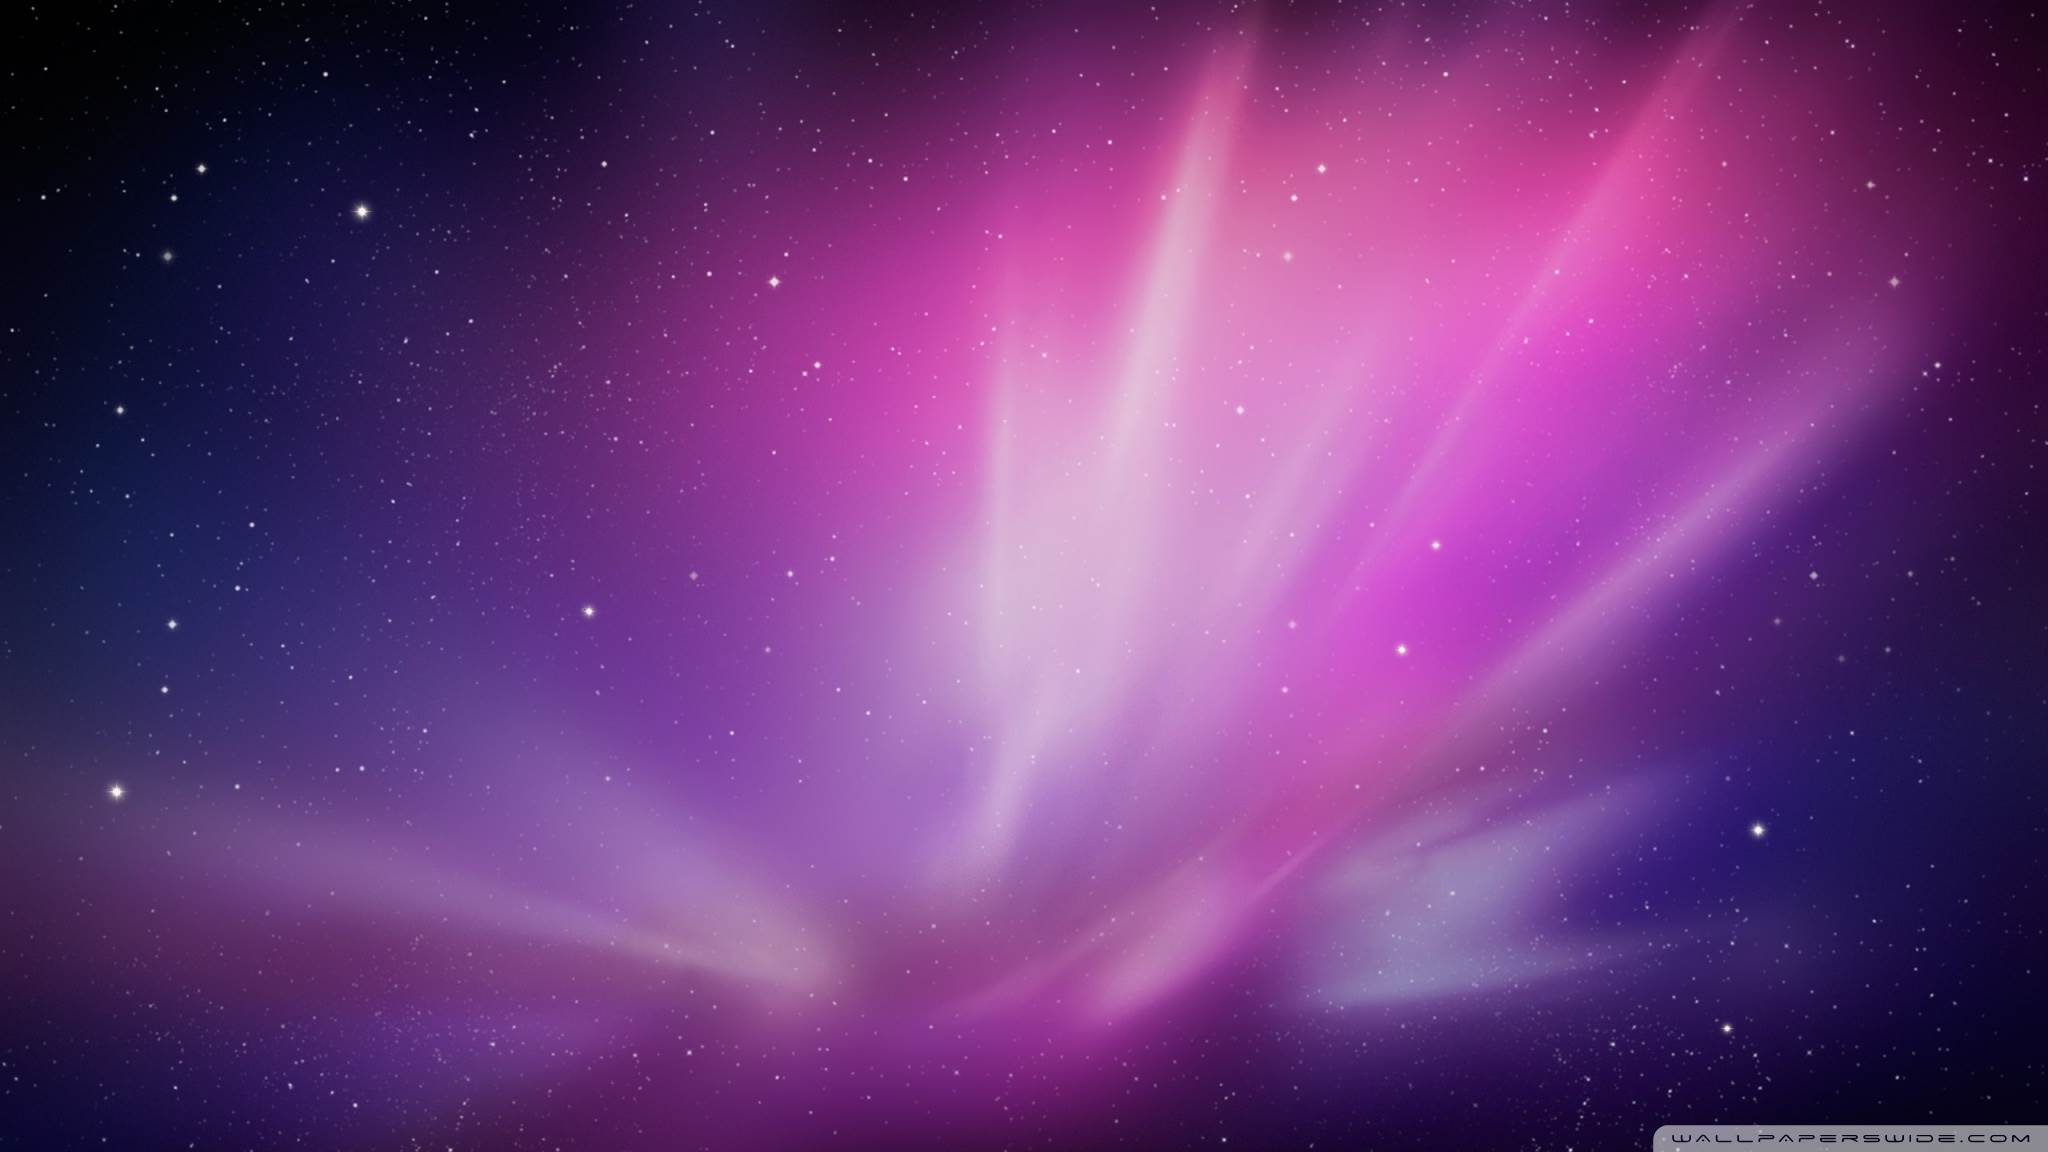 HD Wallpapers For Mac Apple Download 2048x1152